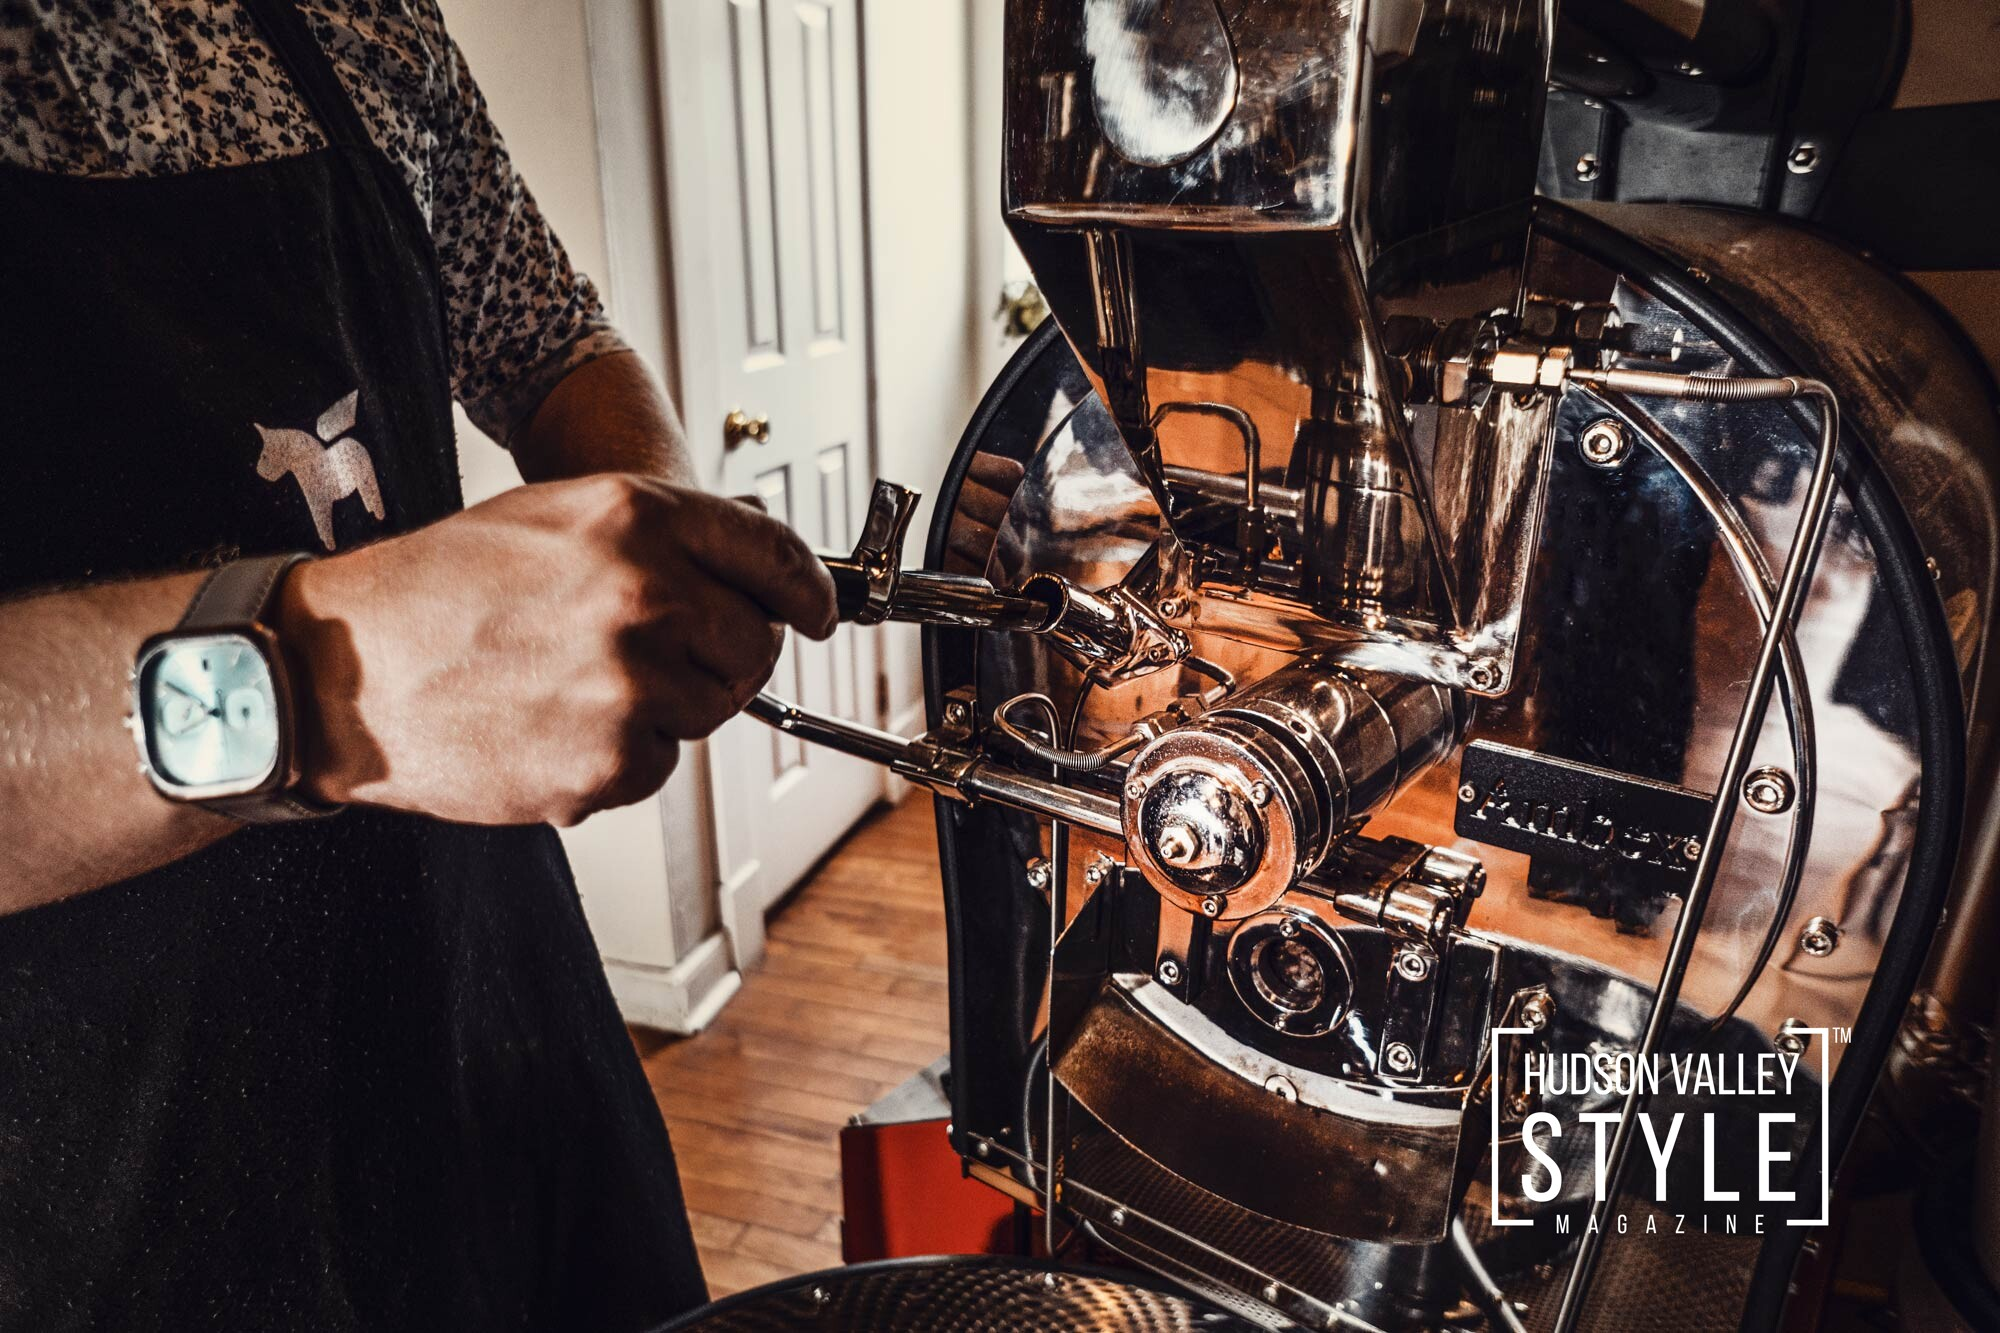 The best coffee-flavored vodka created in Hudson Valley, NY - Exploring Hudson Valley with Dino Alexander – Photography by Maxwell Alexander, Duncan Avenue Studios